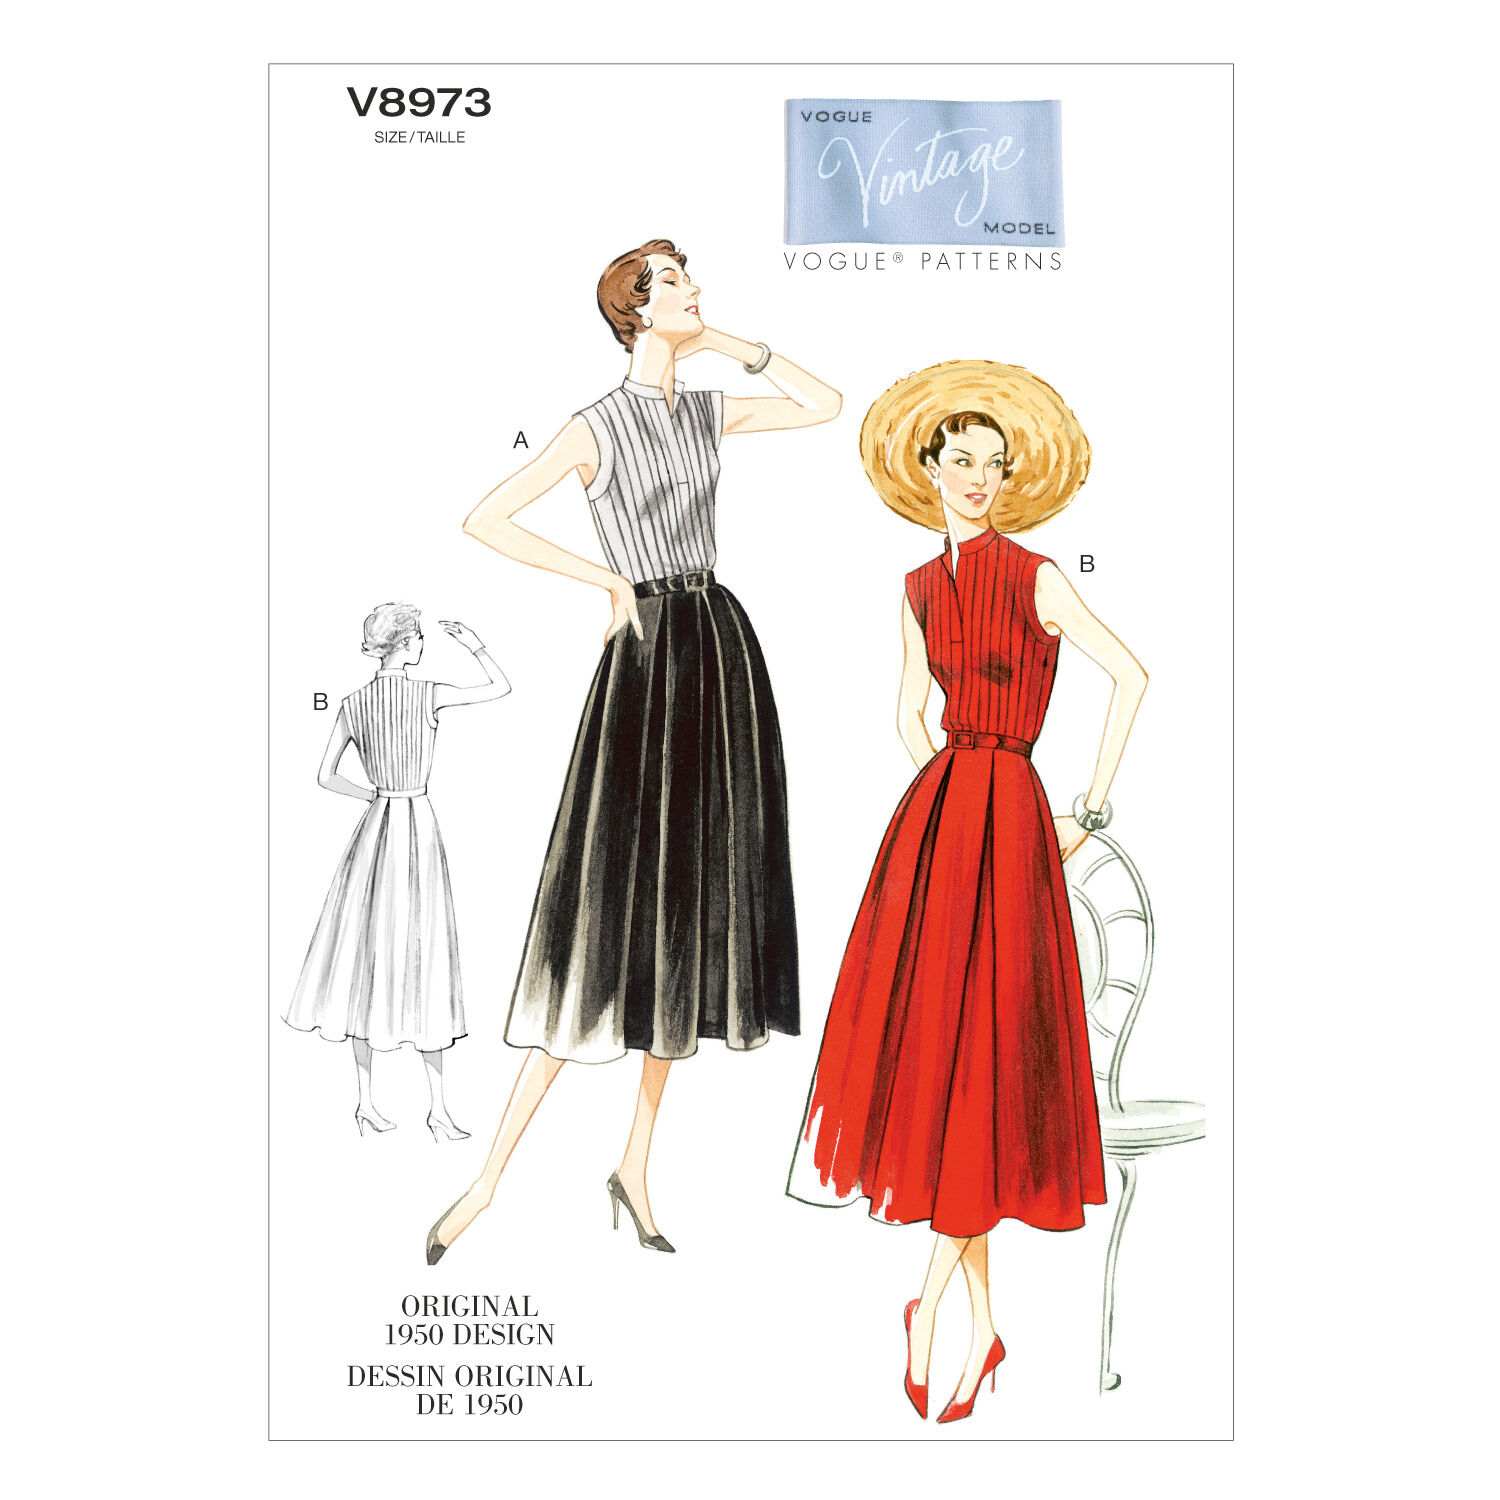 1950s Sewing Patterns | Dresses, Skirts, Tops, Mens 1950 Vogue Patterns Misses Dress - V8973 $18.00 AT vintagedancer.com